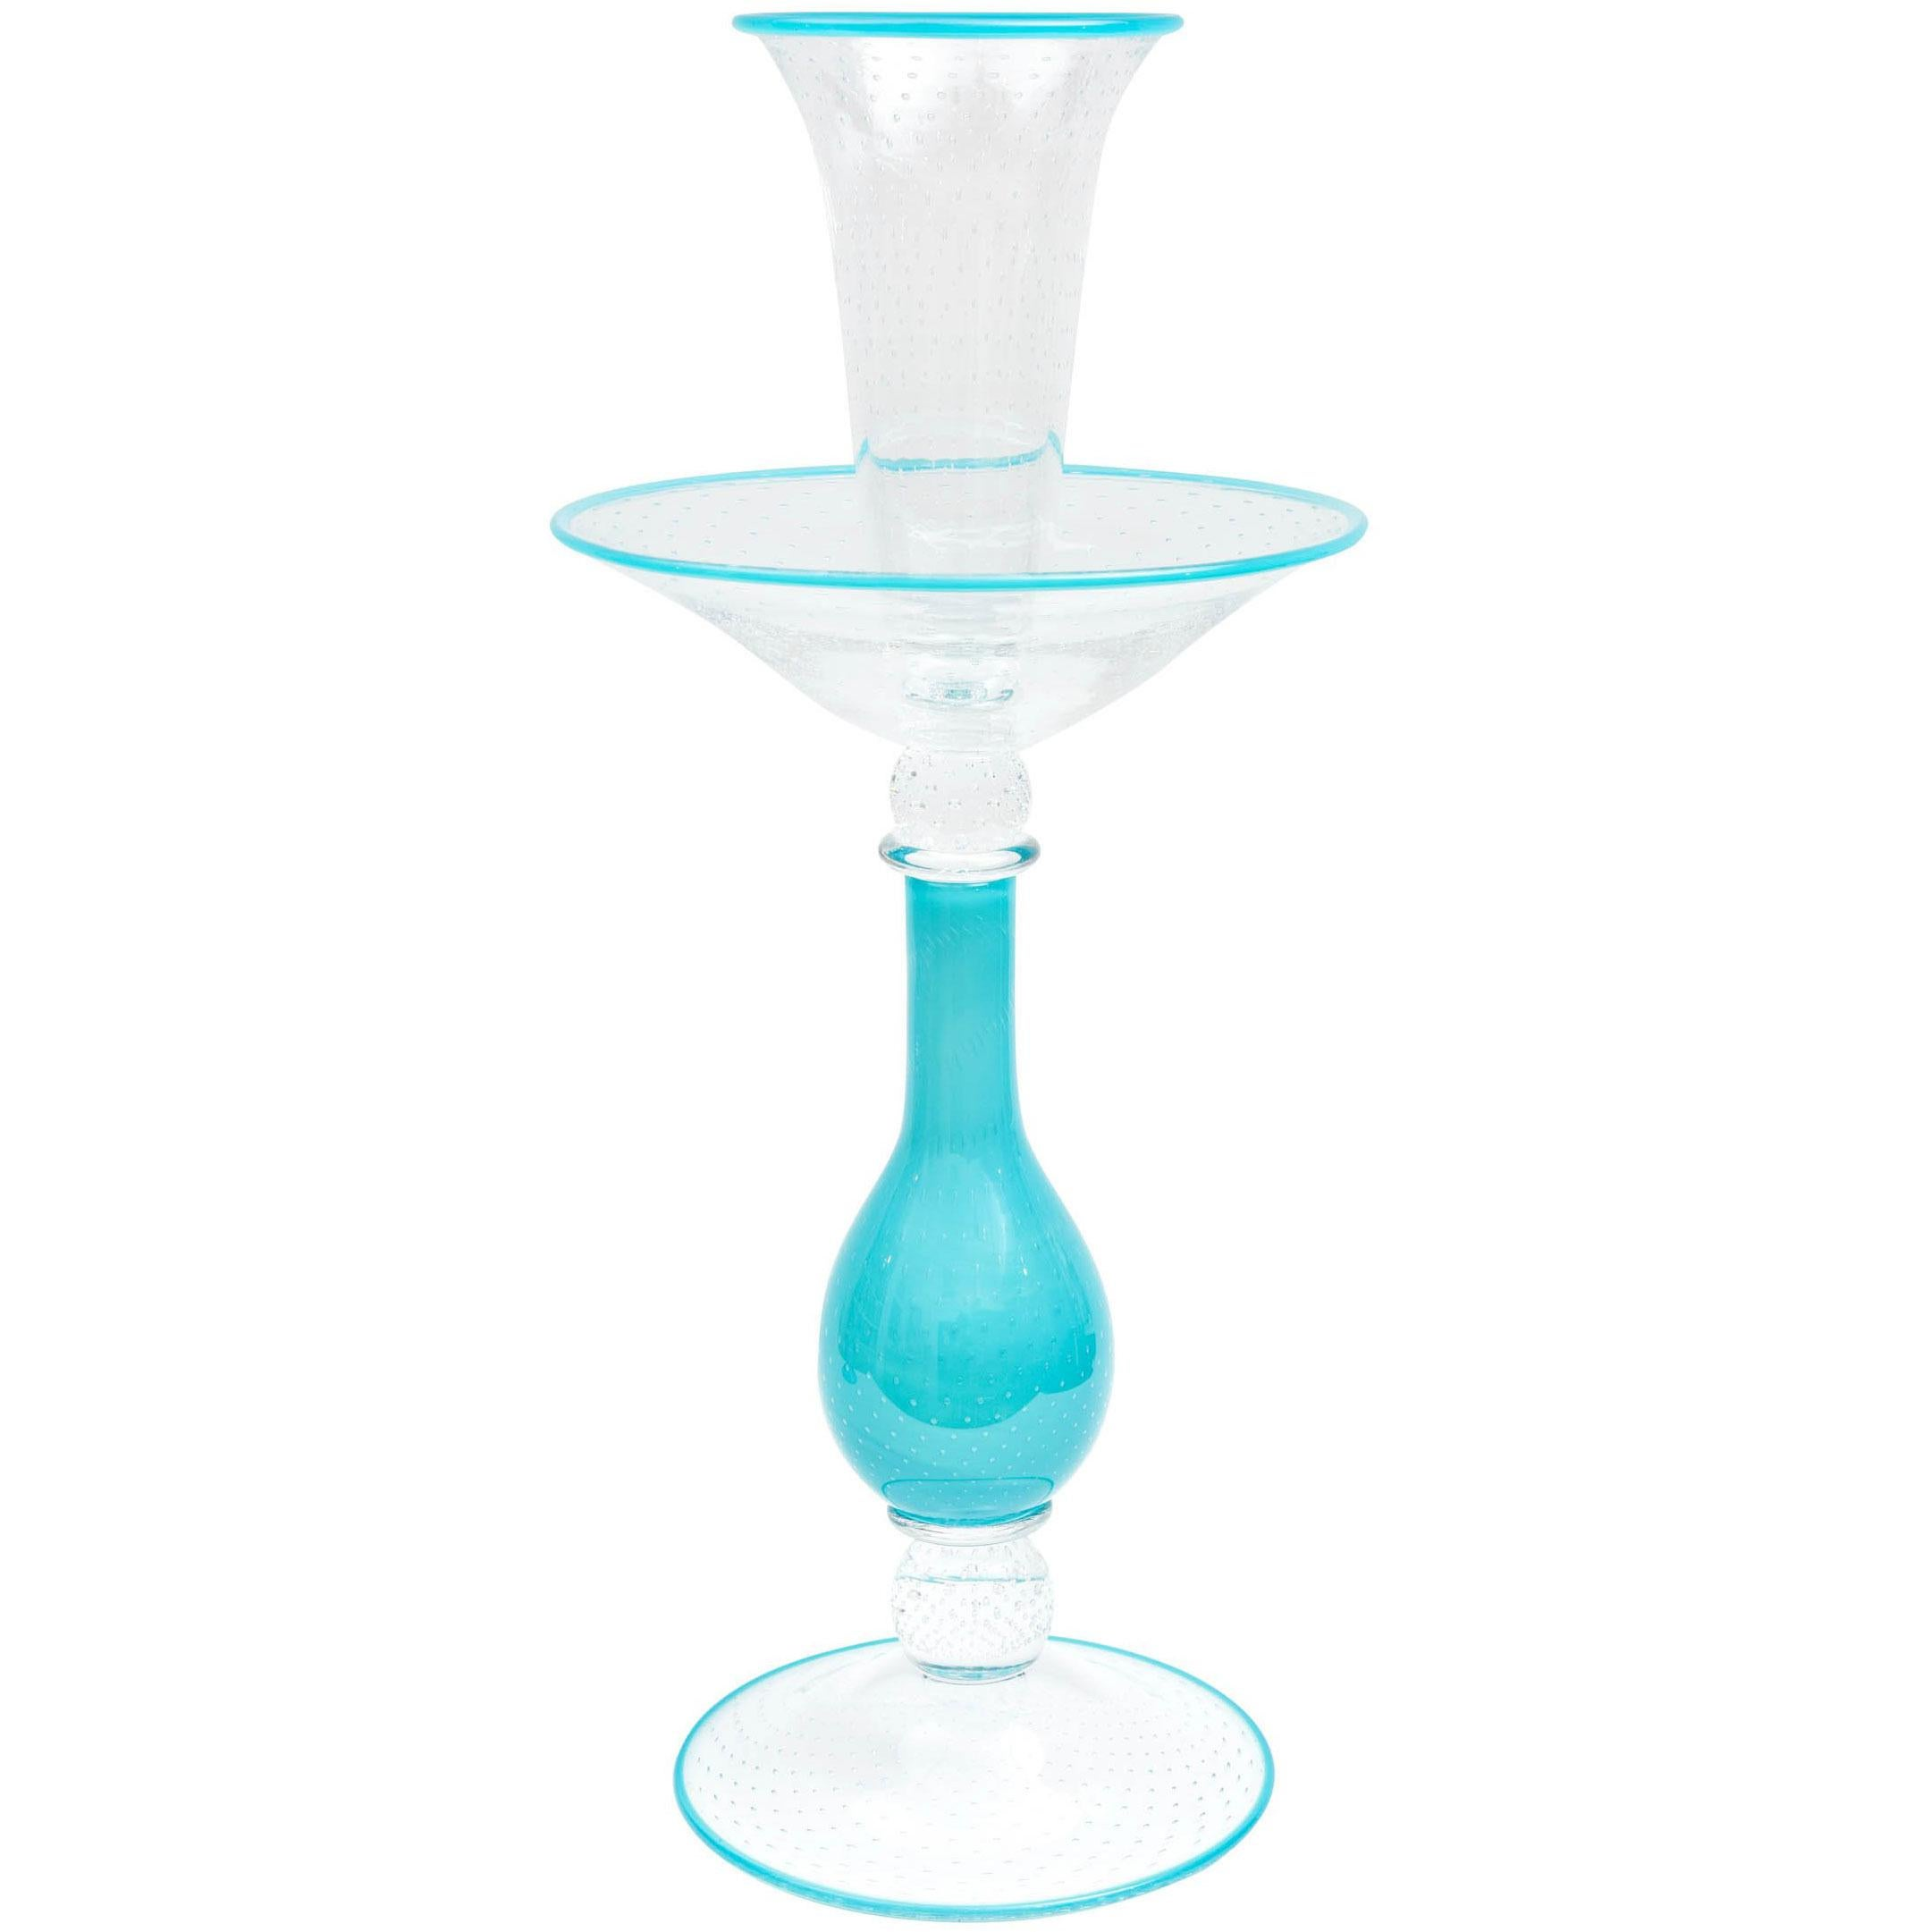 Impressive Tall Tiffany Blue Turquoise Glass Centrepiece Epergne, Custom Color